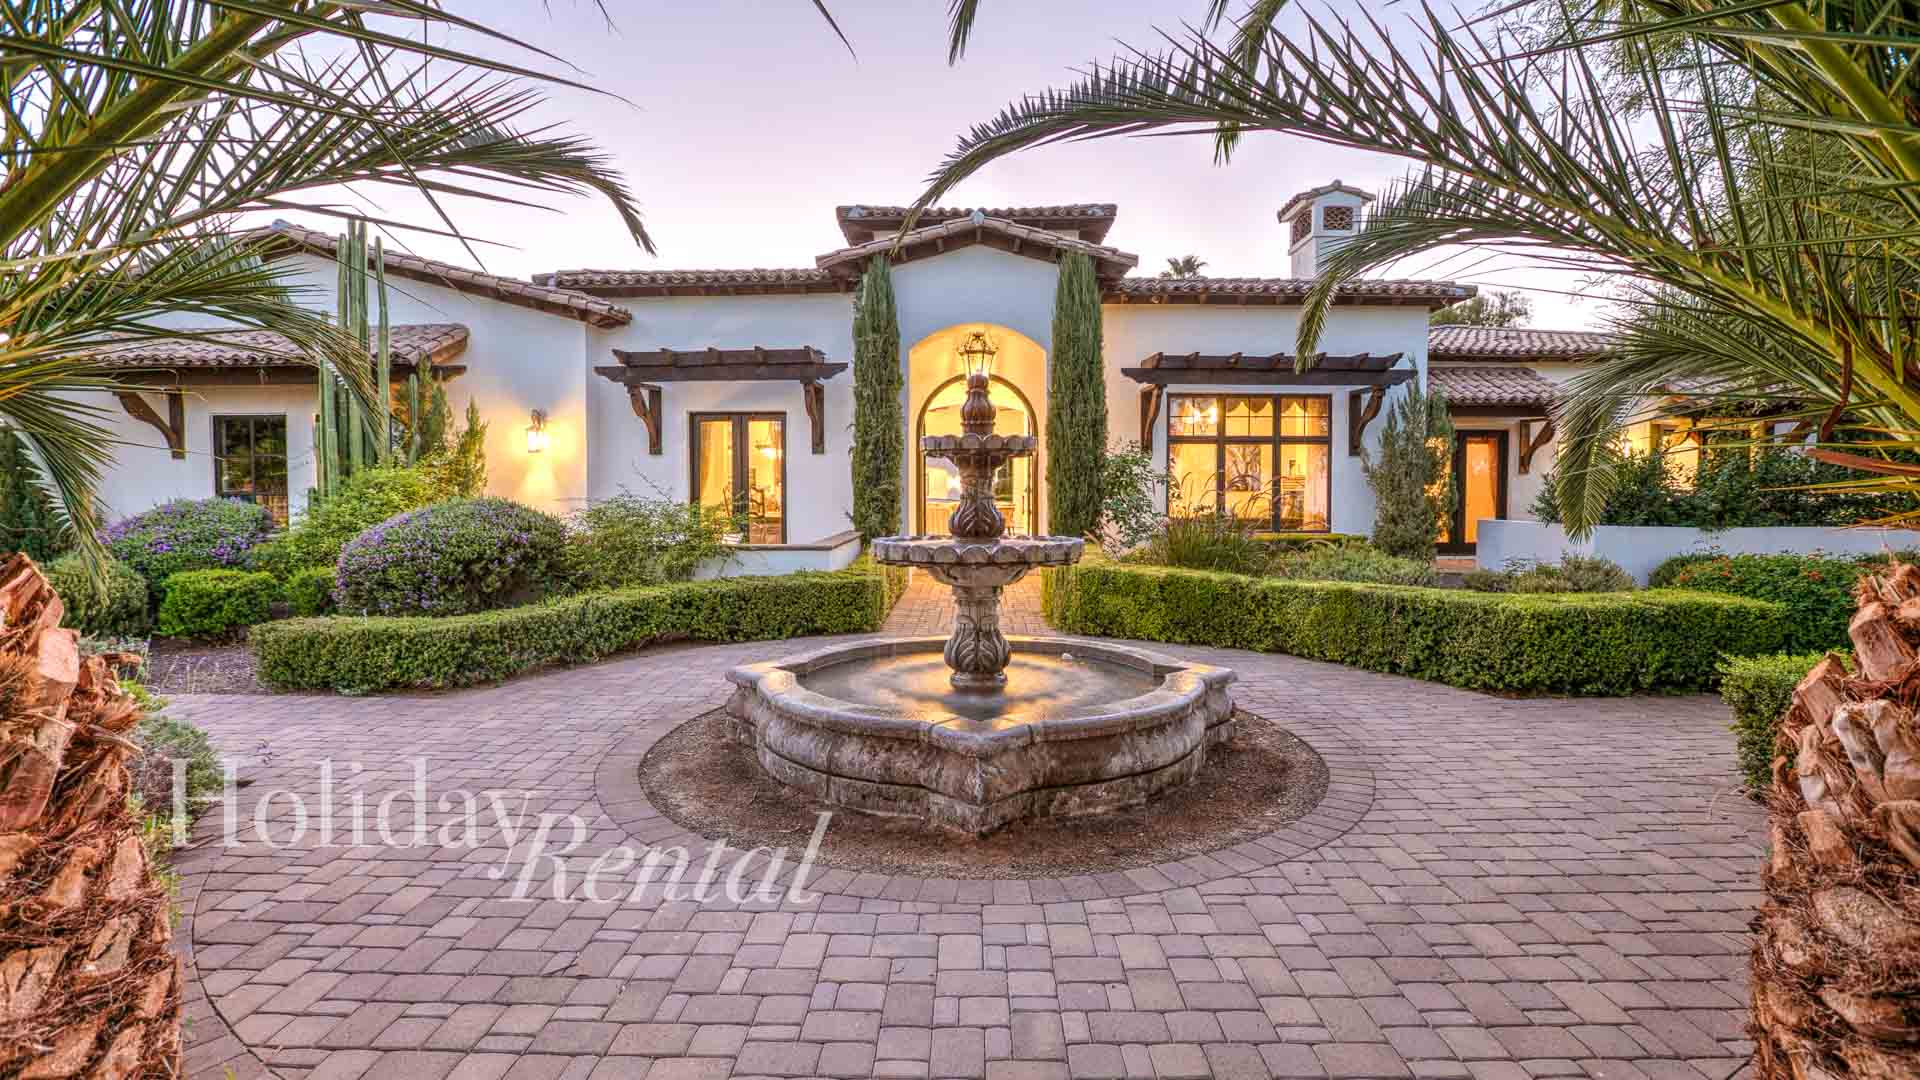 Amazing Location, Spacious, Inviting, Pool & Jacuzzi, Resort-Style Living